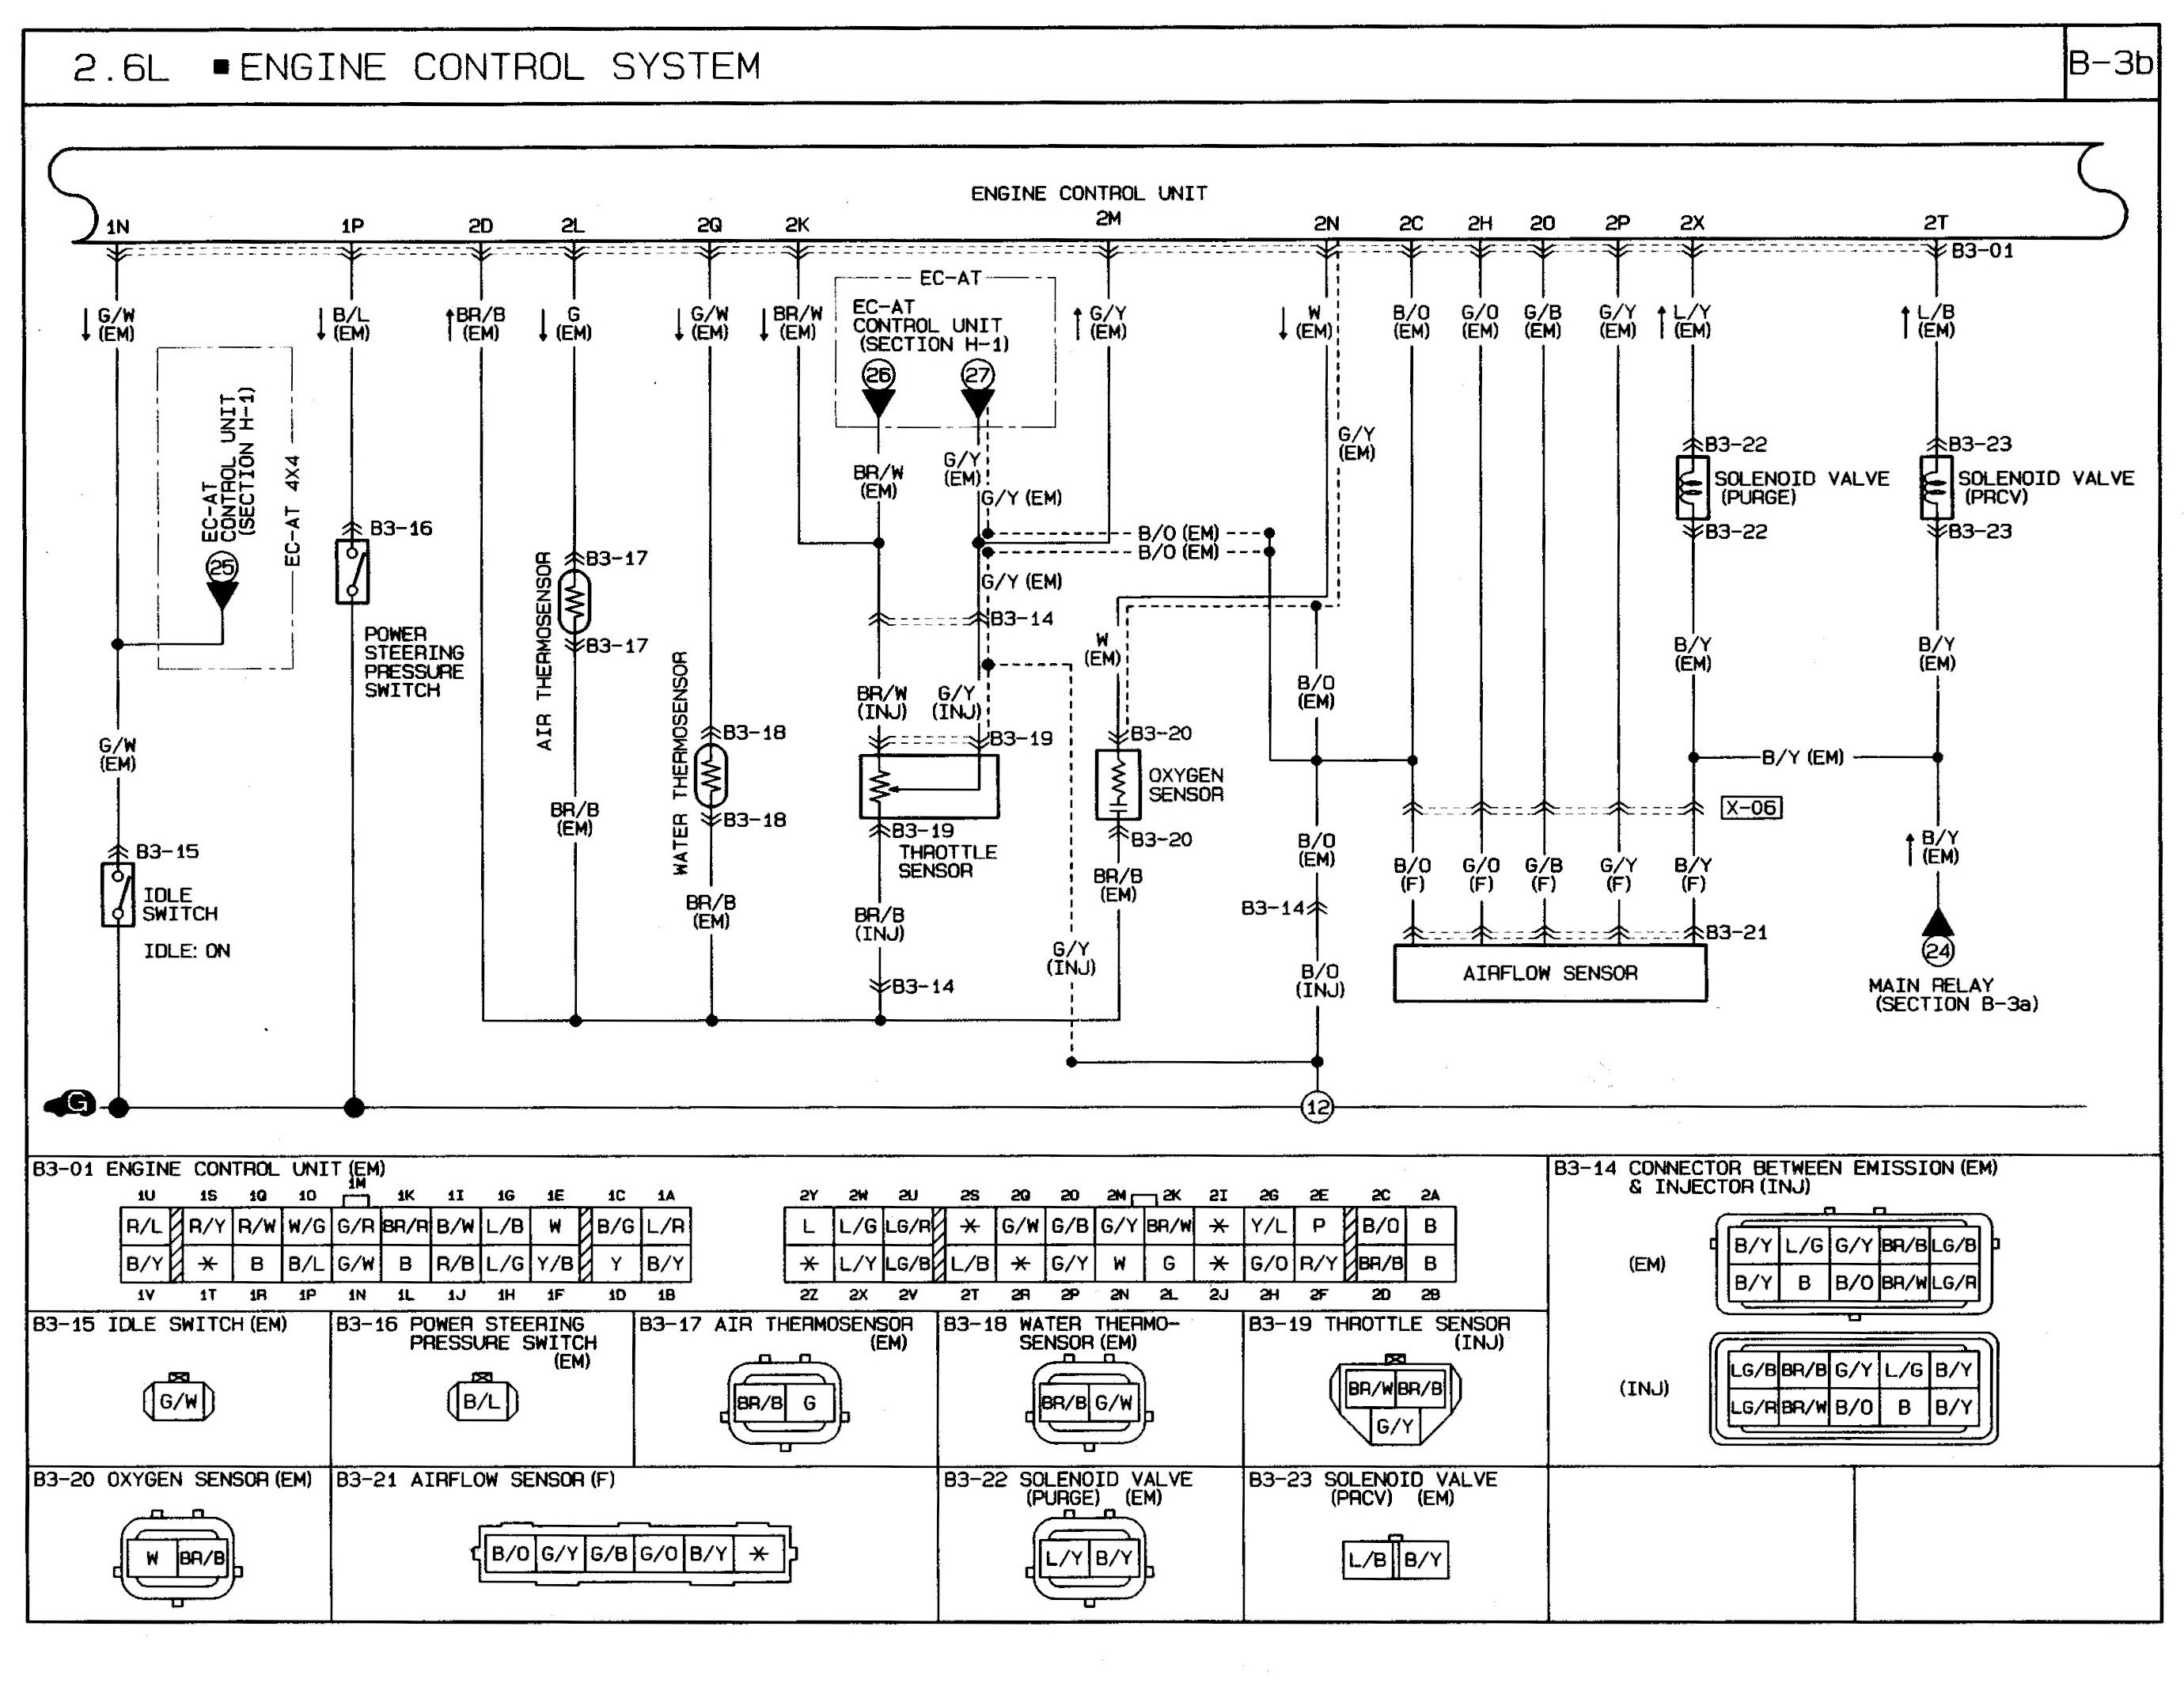 Mazda Wiring Diagram Mpv1994 Wiring Diagram Schematic Bare Store Bare Store Aliceviola It